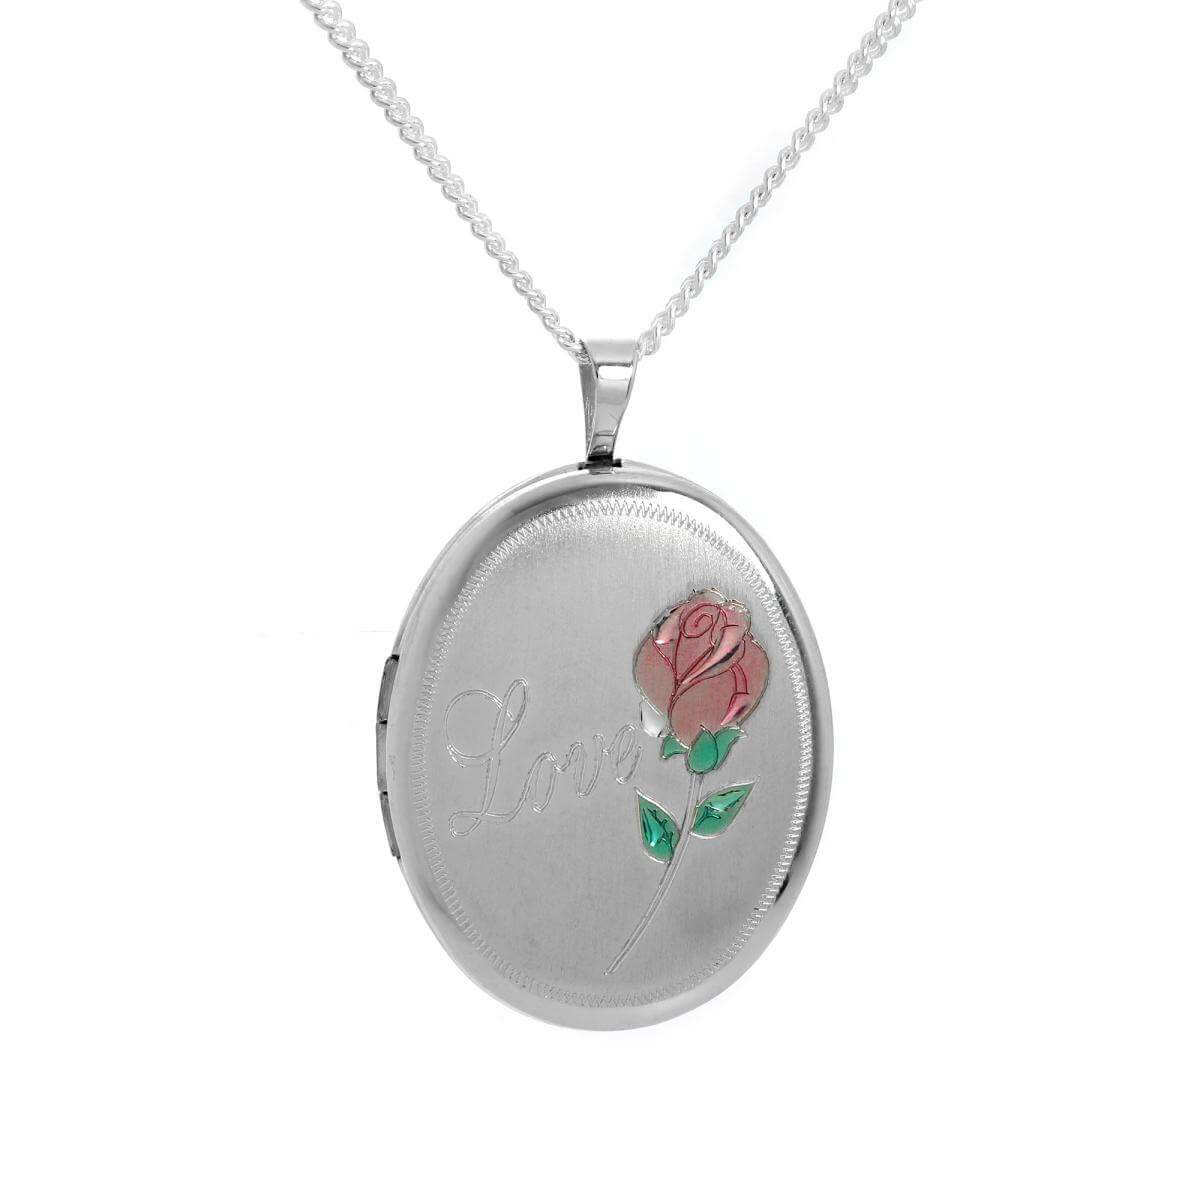 Brushed Sterling Silver Oval Rose Love Locket on Chain